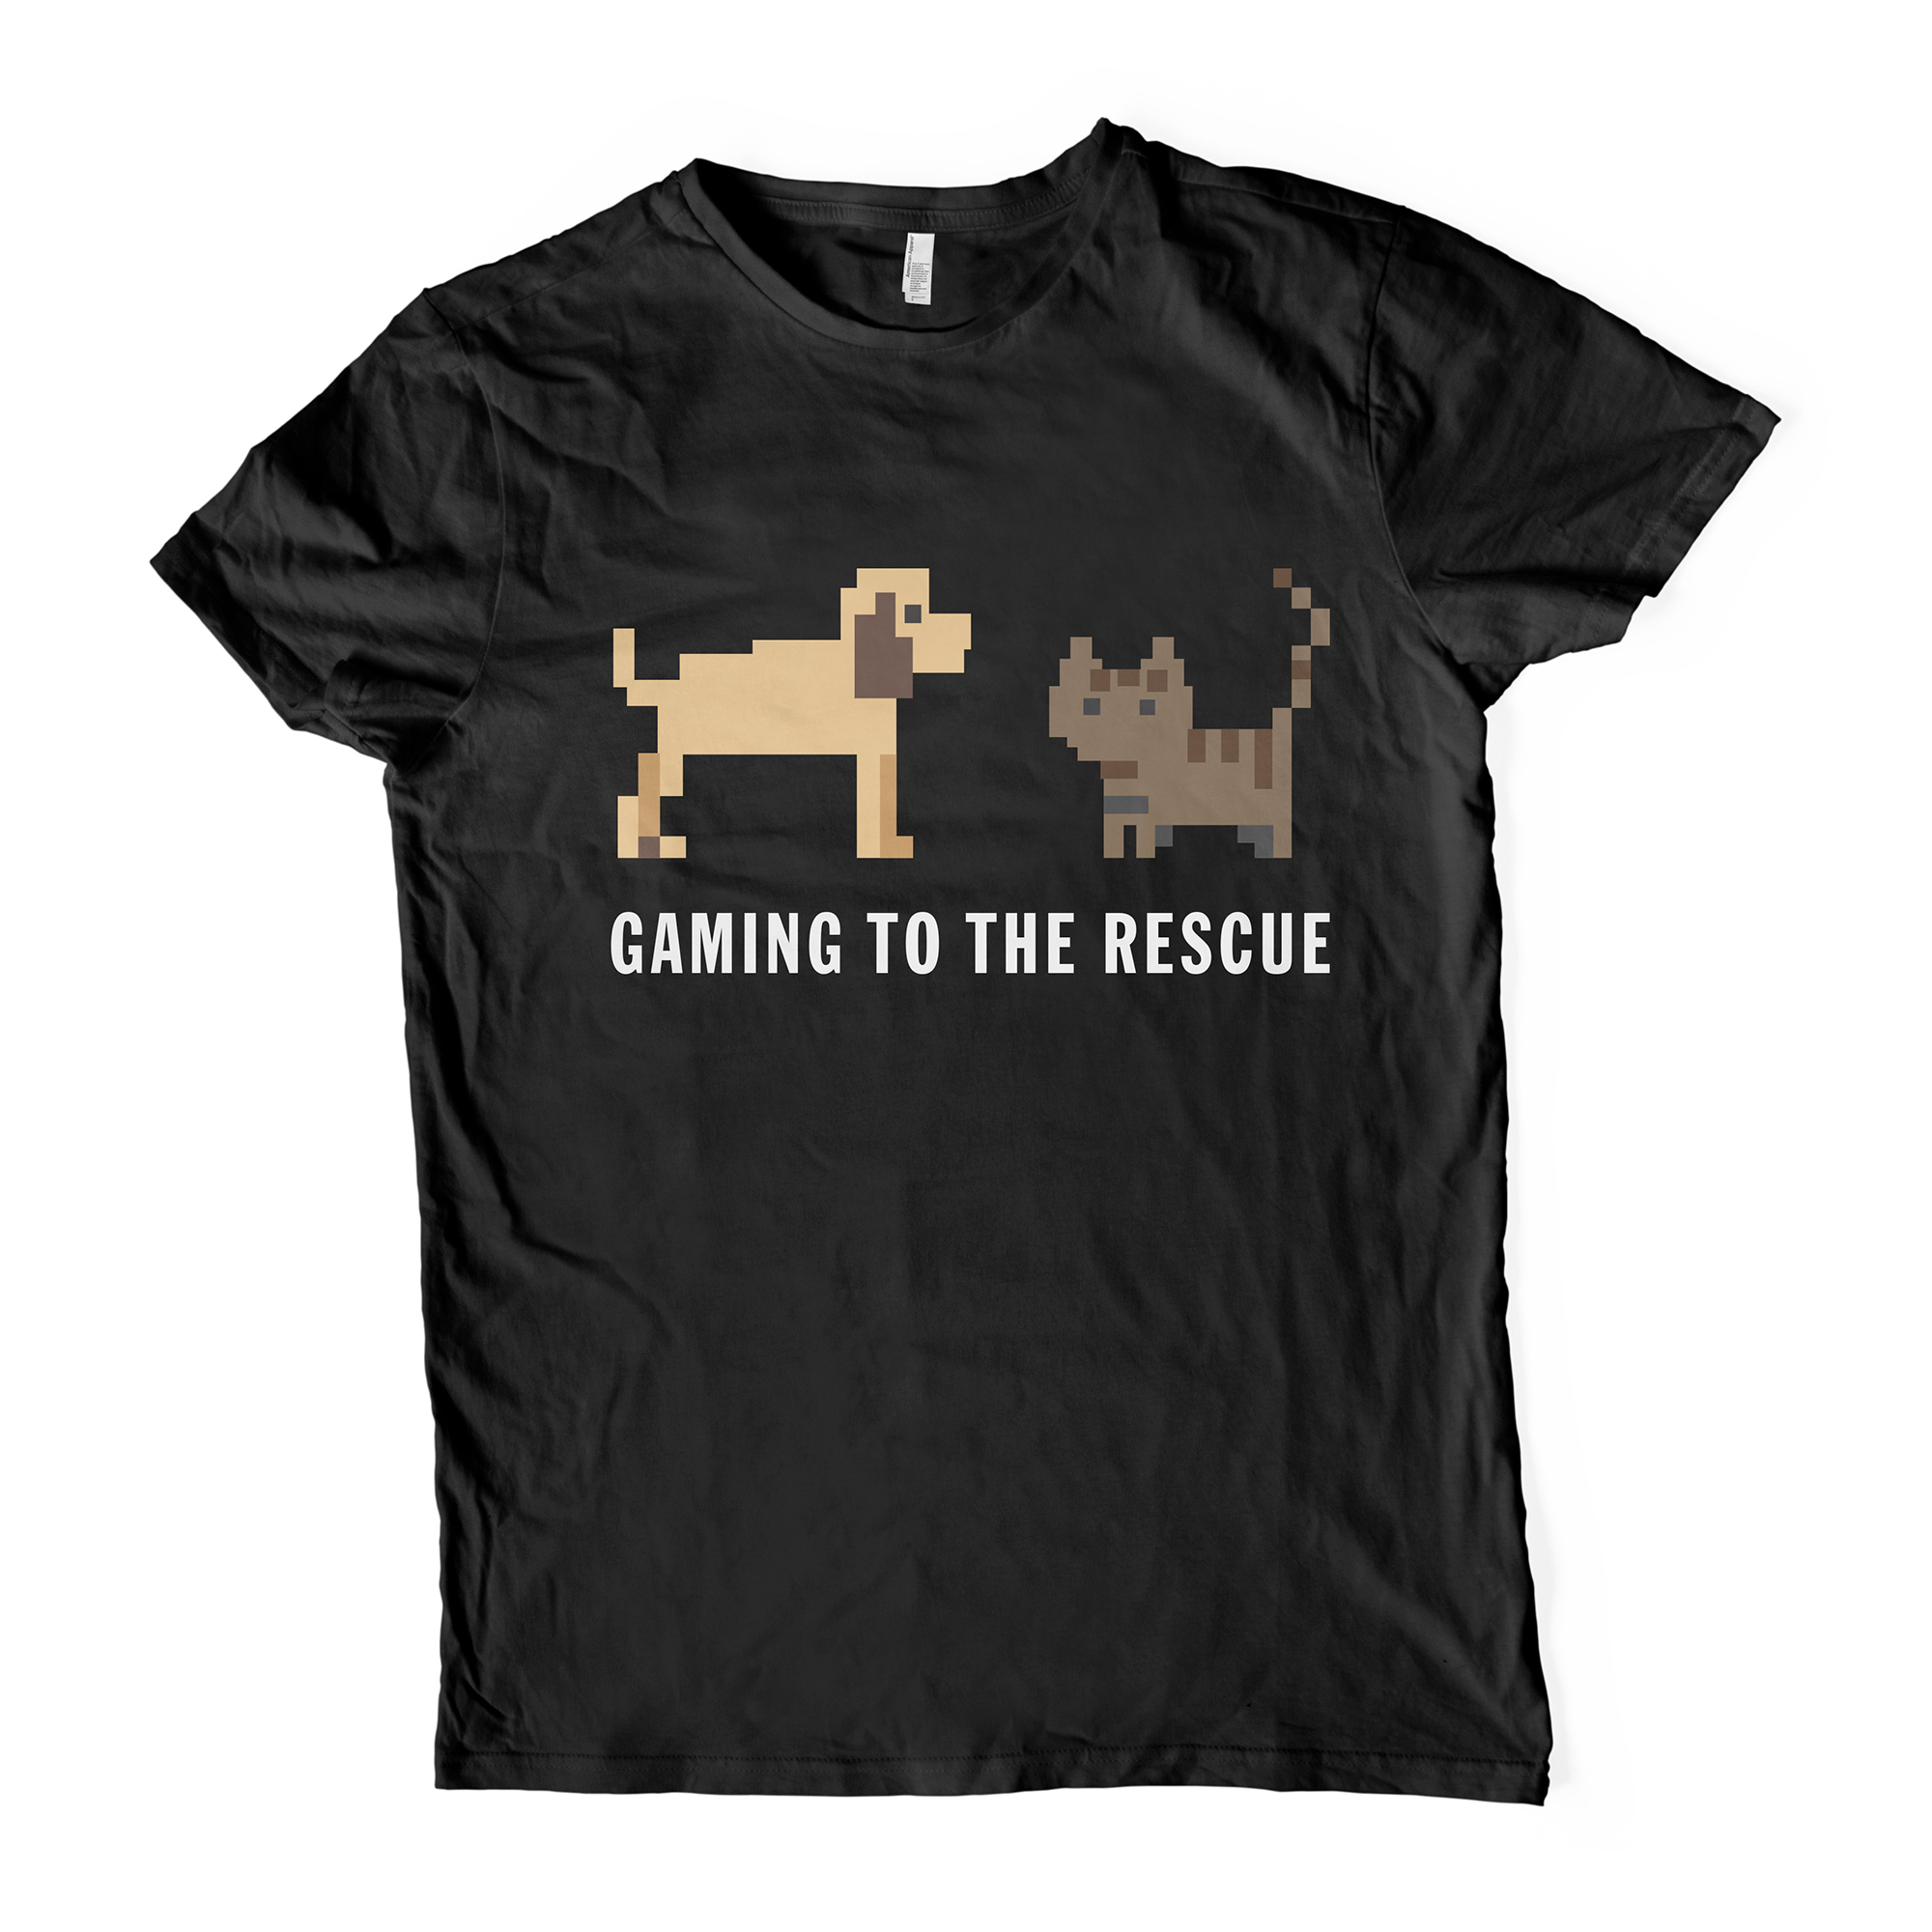 Gaming to the rescue branded t-shirt in black